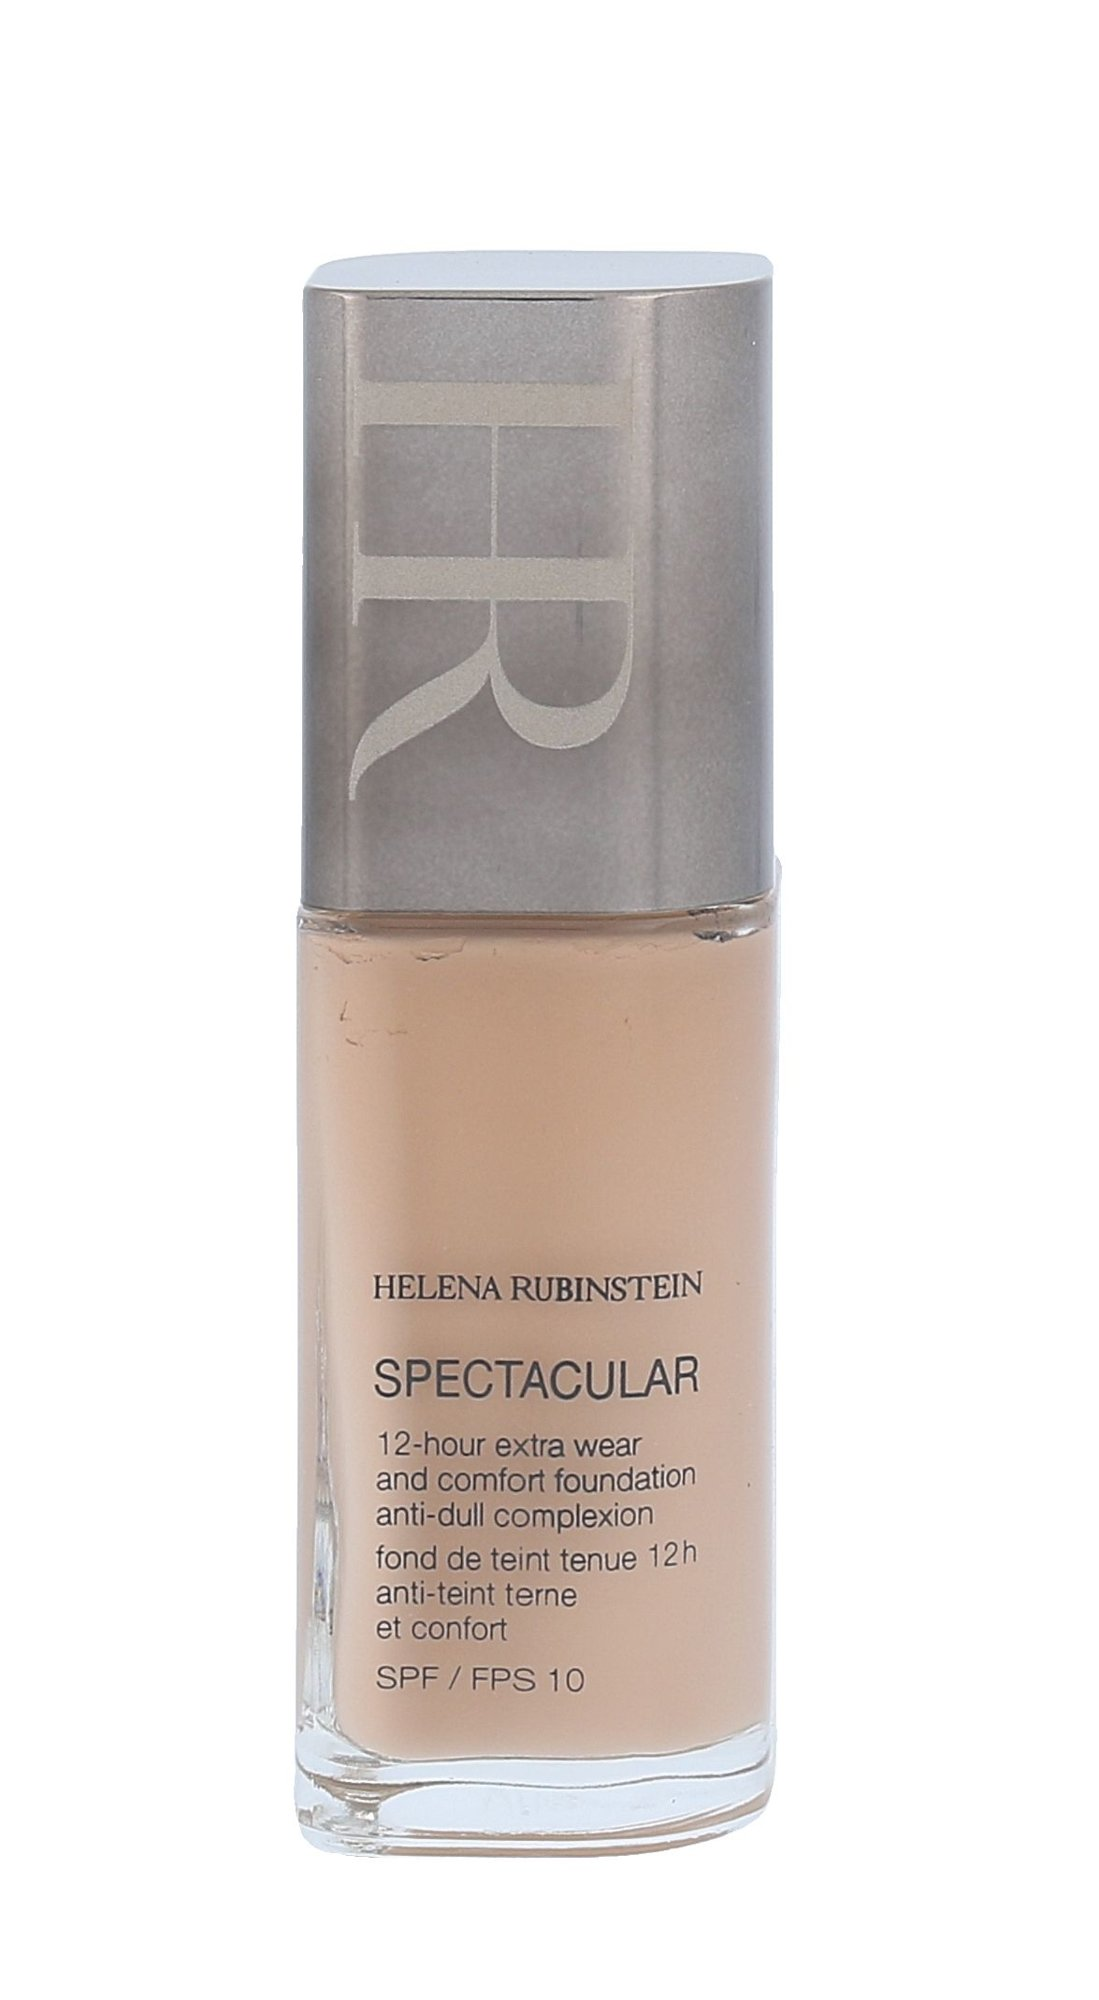 Helena Rubinstein Spectacular Cosmetic 30ml 23 Biscuit SPF10